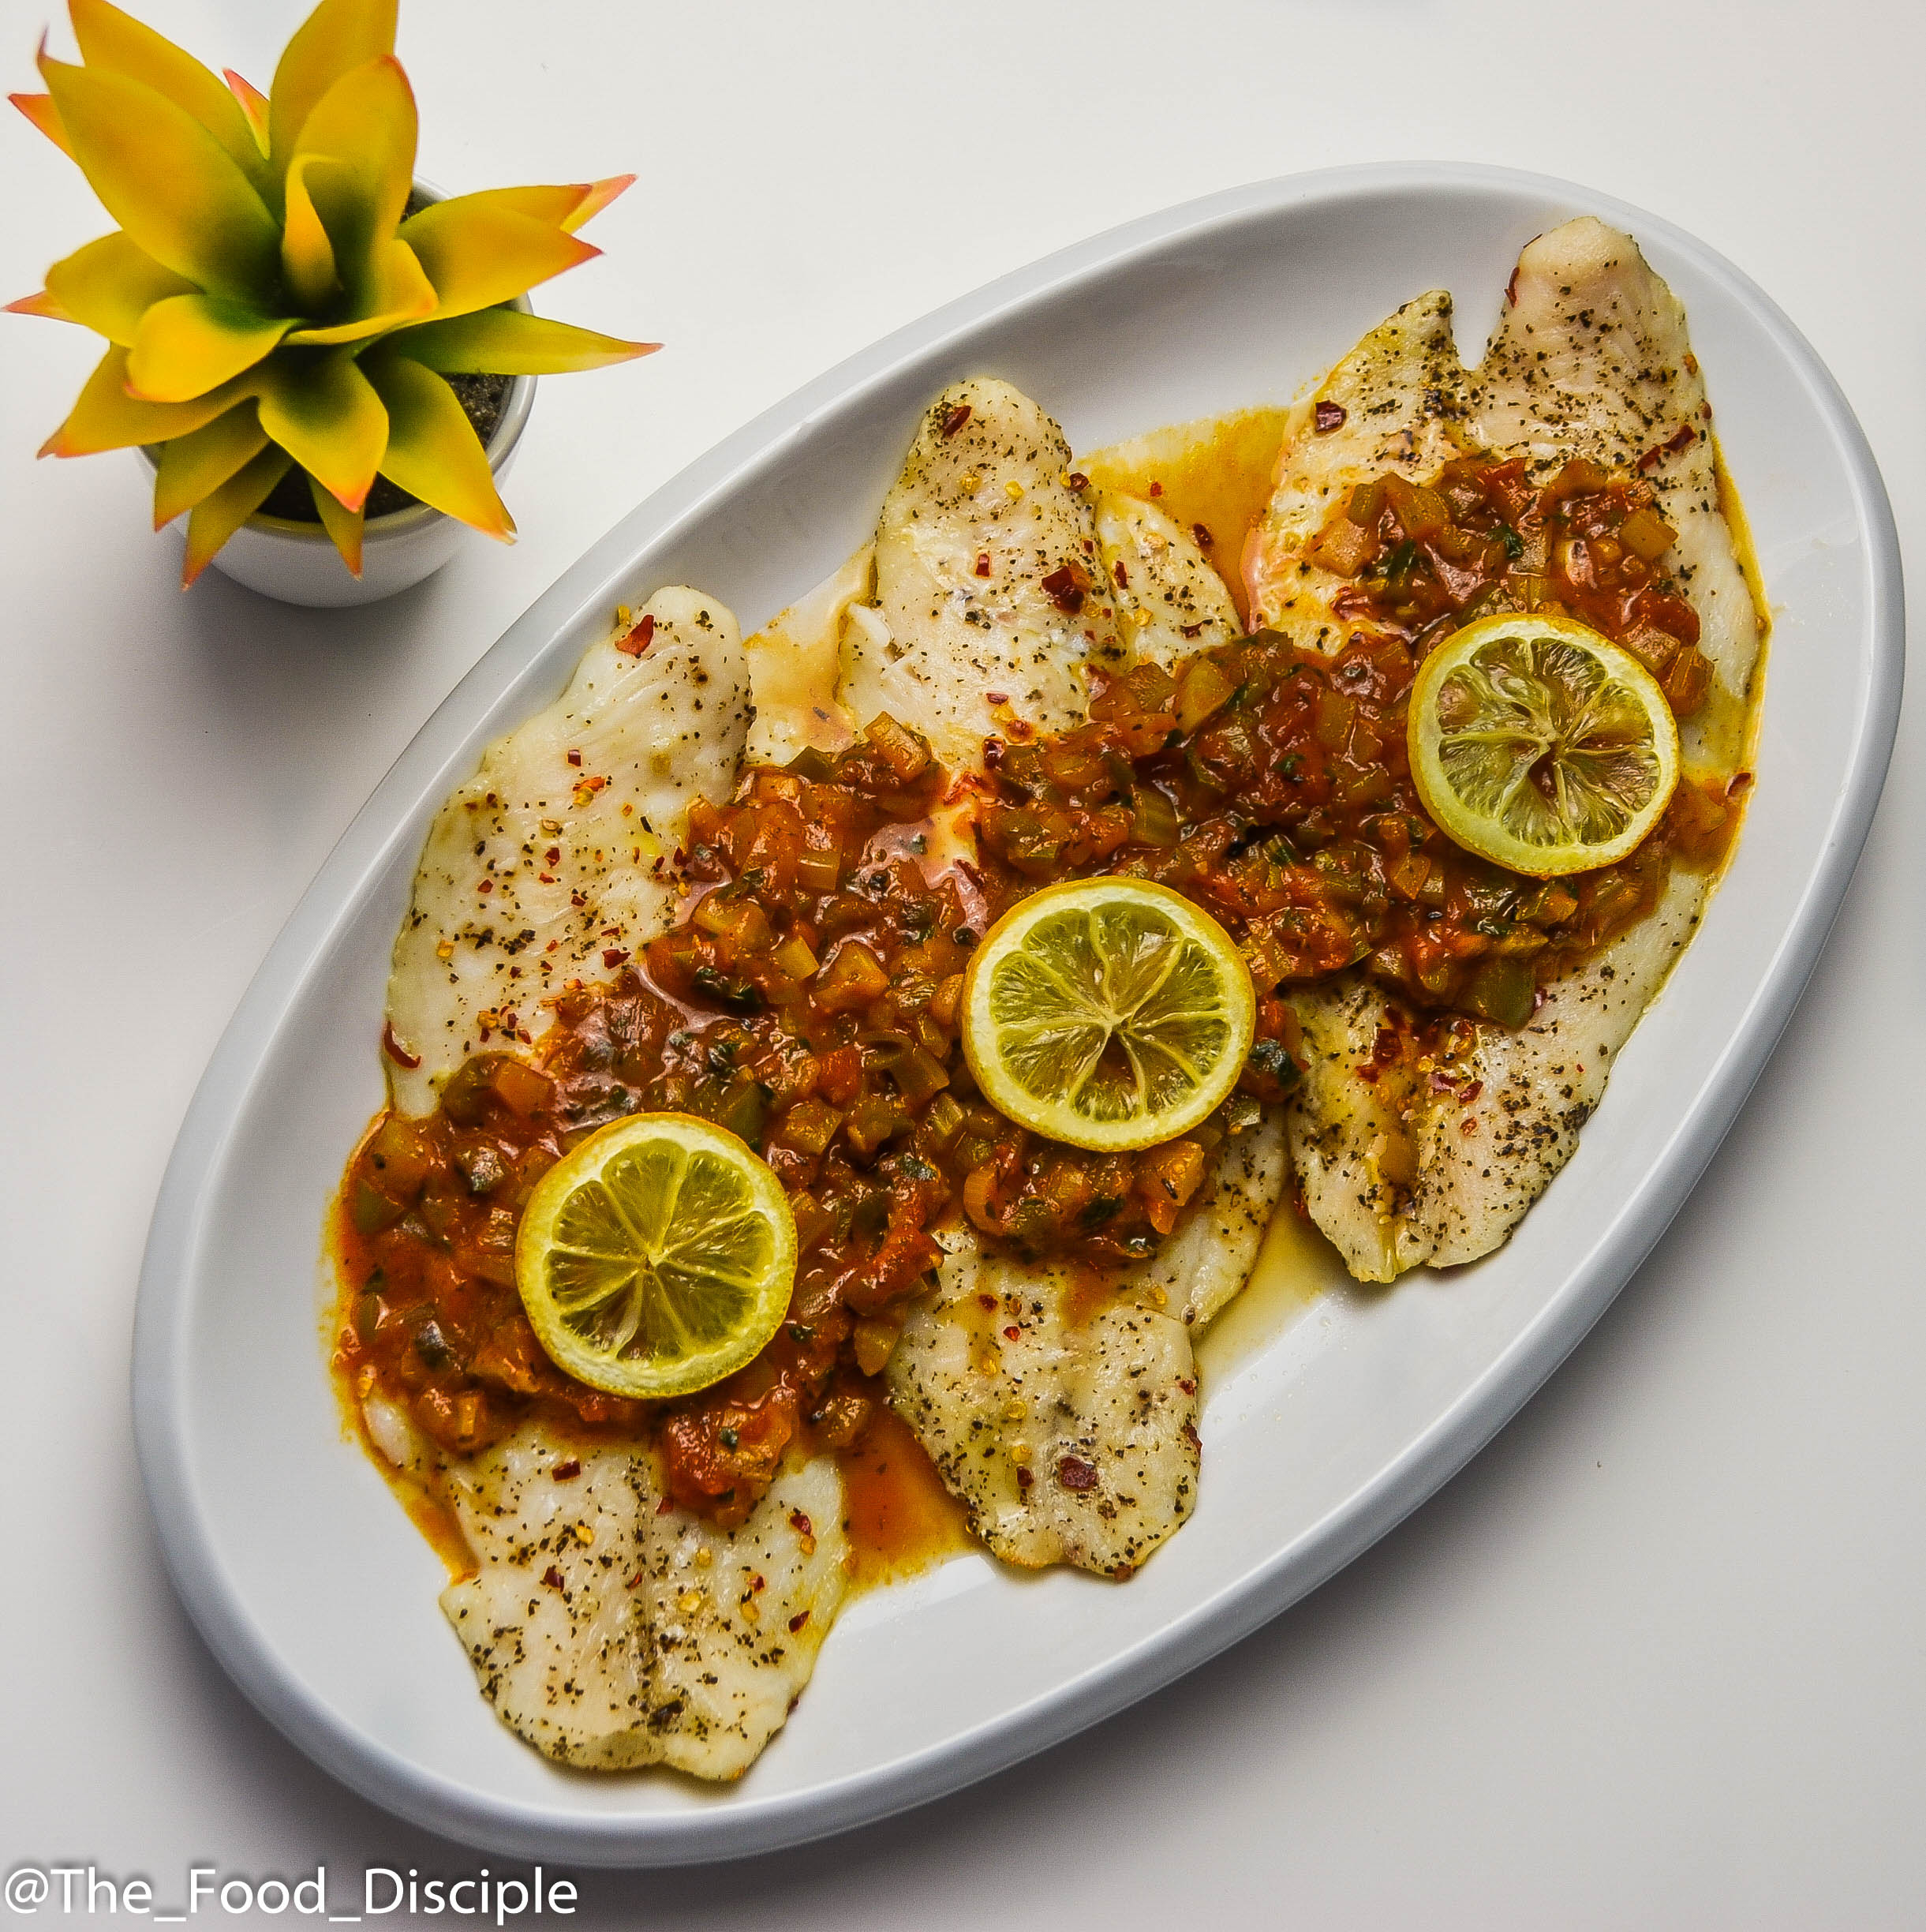 Creole Sauce served on Grilled Basa Fillet